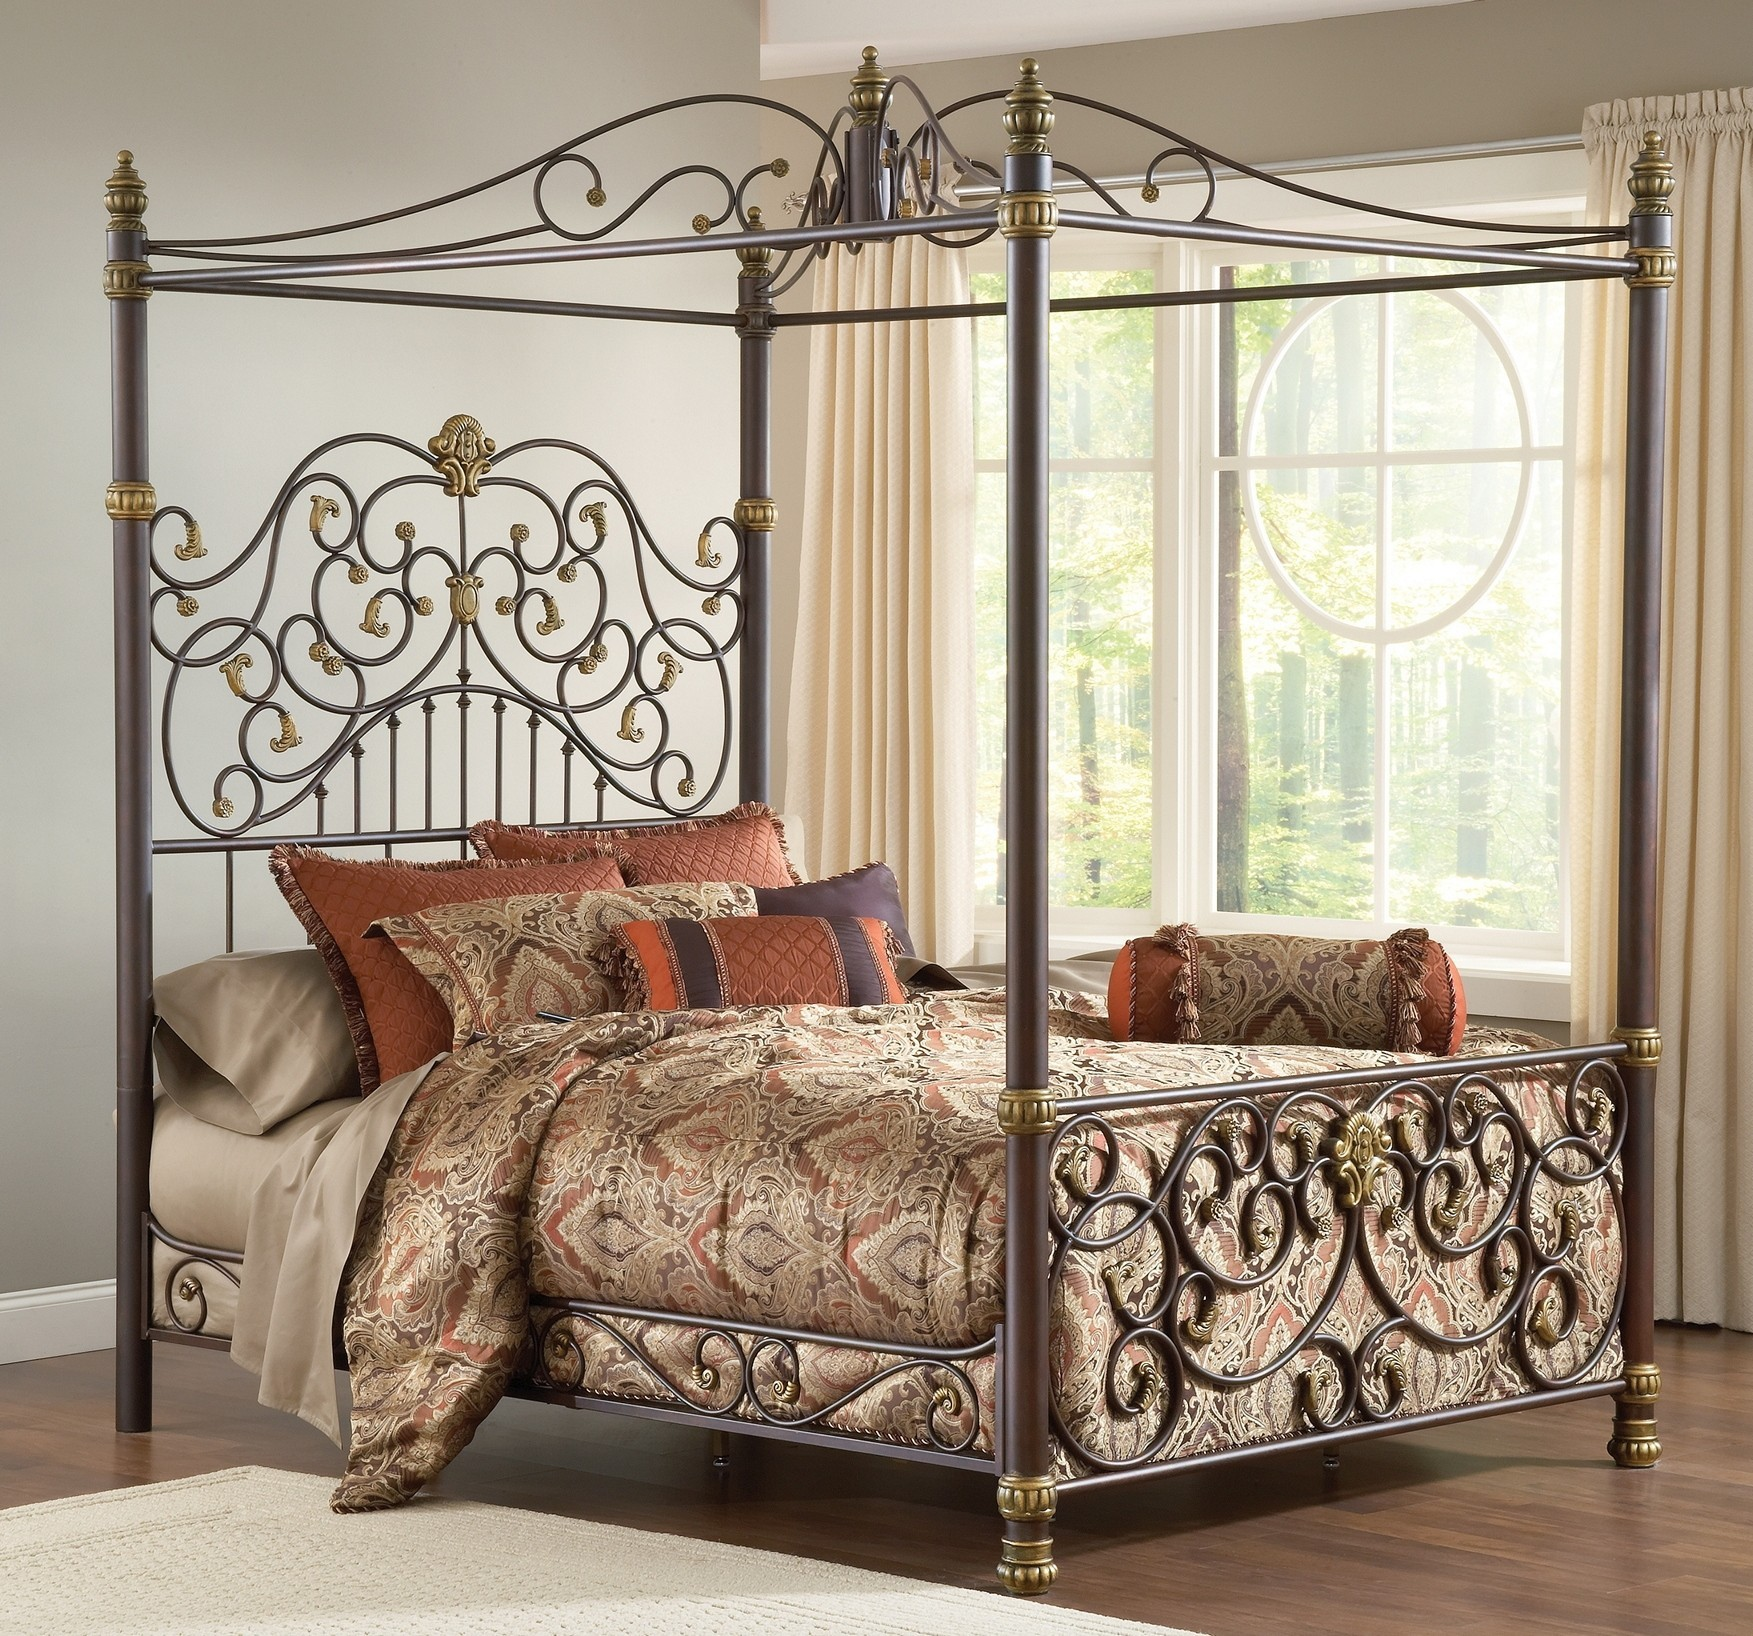 dark iron canopy bed frame with gold bedding set decor